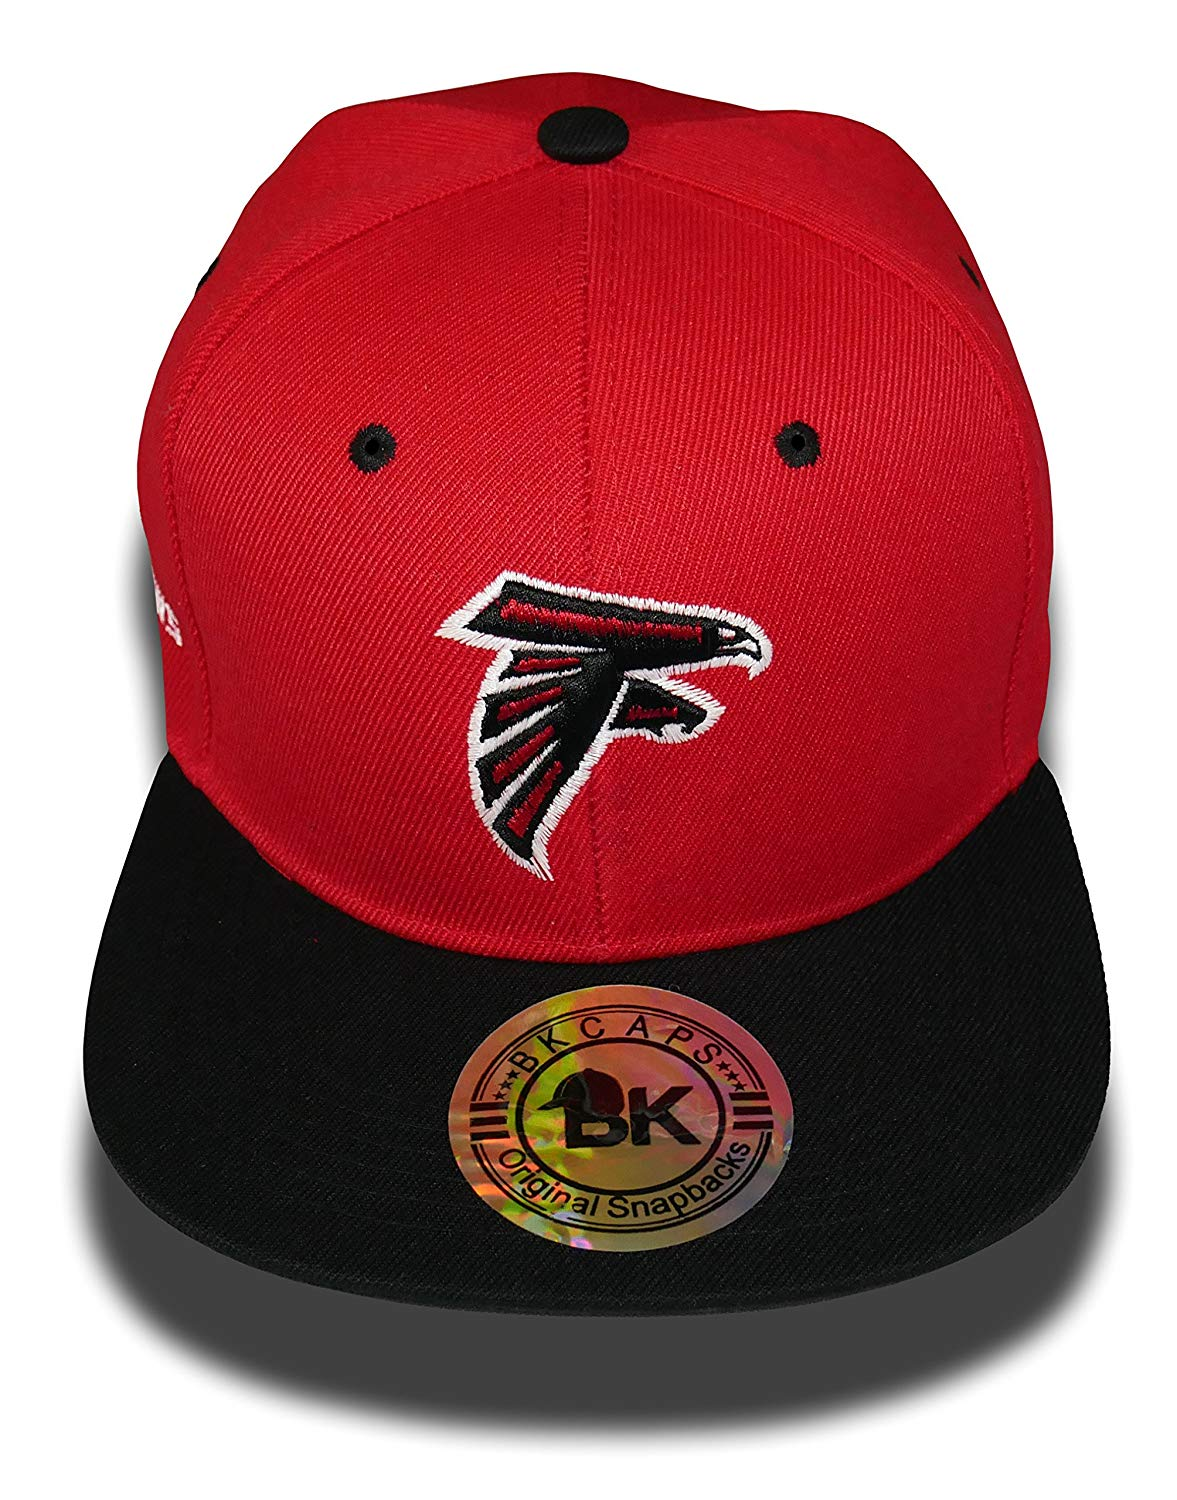 finest selection 222b2 7fd9f Get Quotations · C-2 Stitch Atlanta Falcons Glow in The Dark Snapback Hats